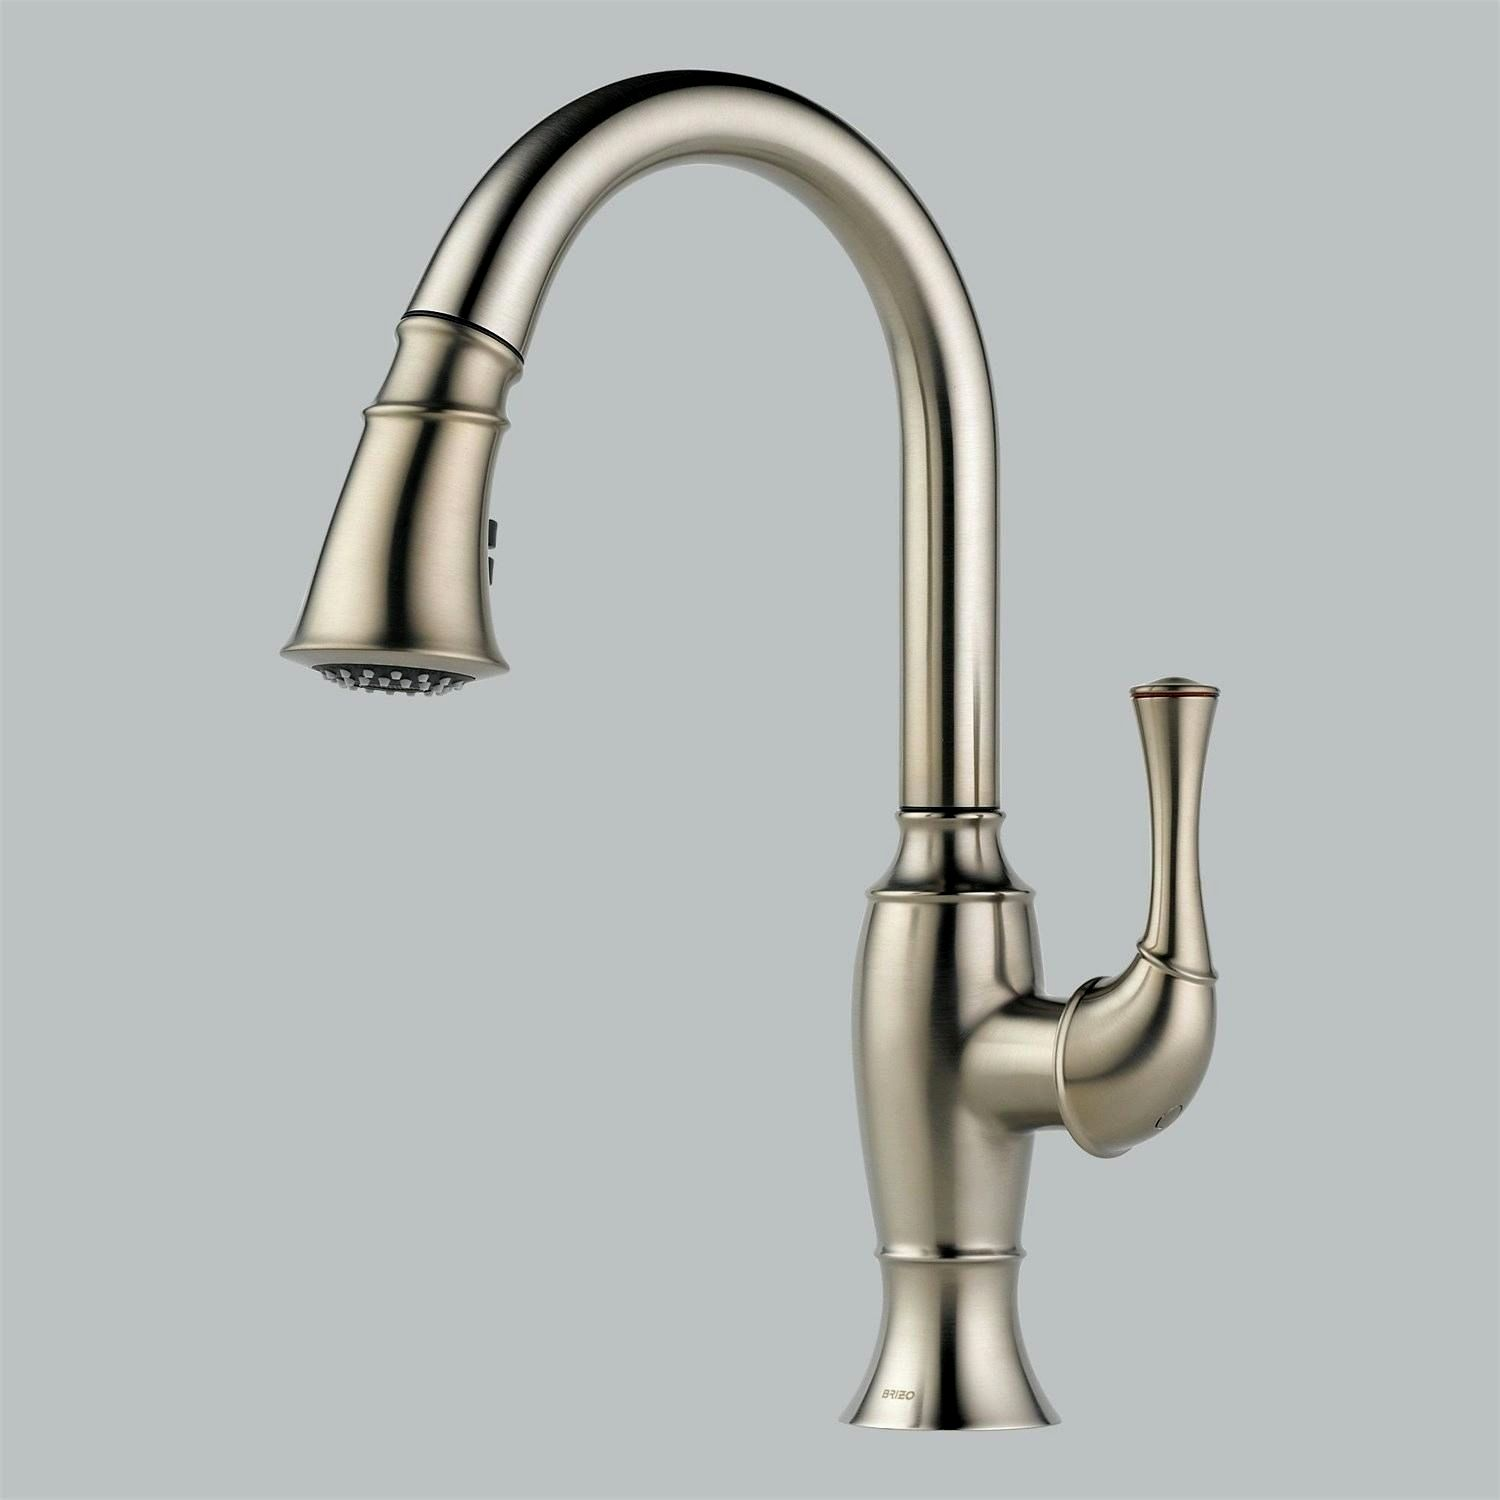 new grohe bathroom faucets inspiration-Awesome Grohe Bathroom Faucets Layout